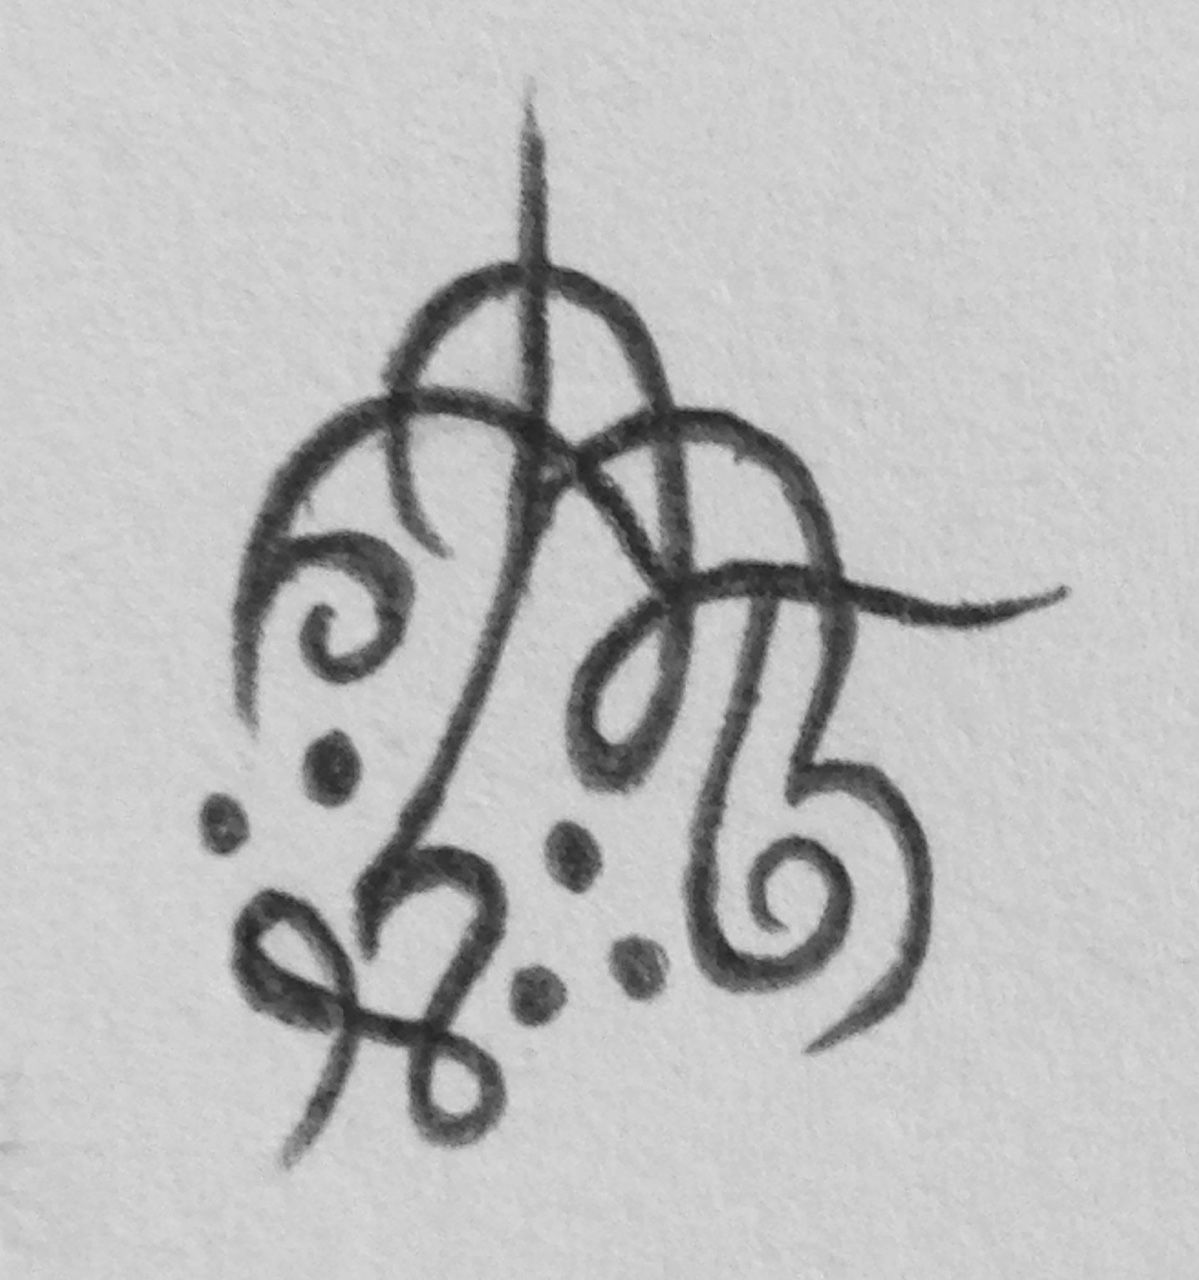 A sigil witch sigil i am protected from hateful words pinned a sigil witch sigil i am protected from hateful words pinned by the protection symbols tattooprotection buycottarizona Image collections